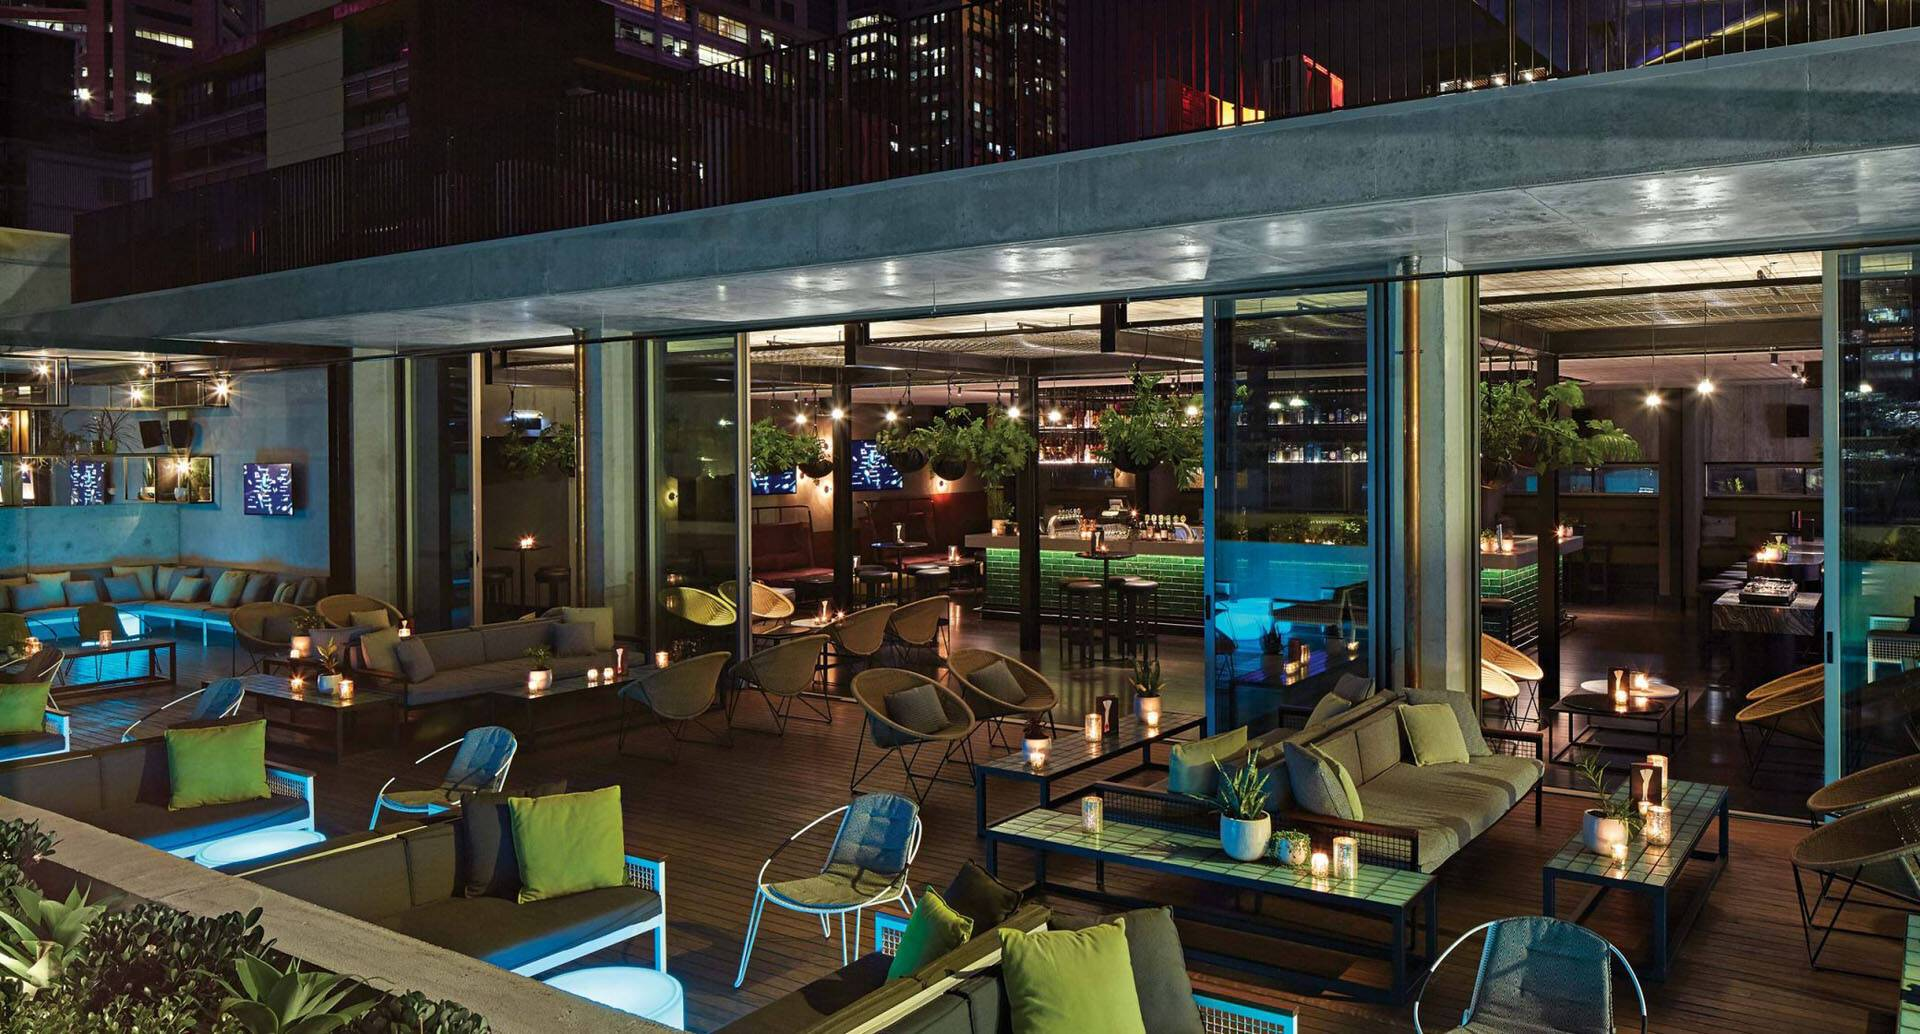 Melbourne QT Hotel Rooftop